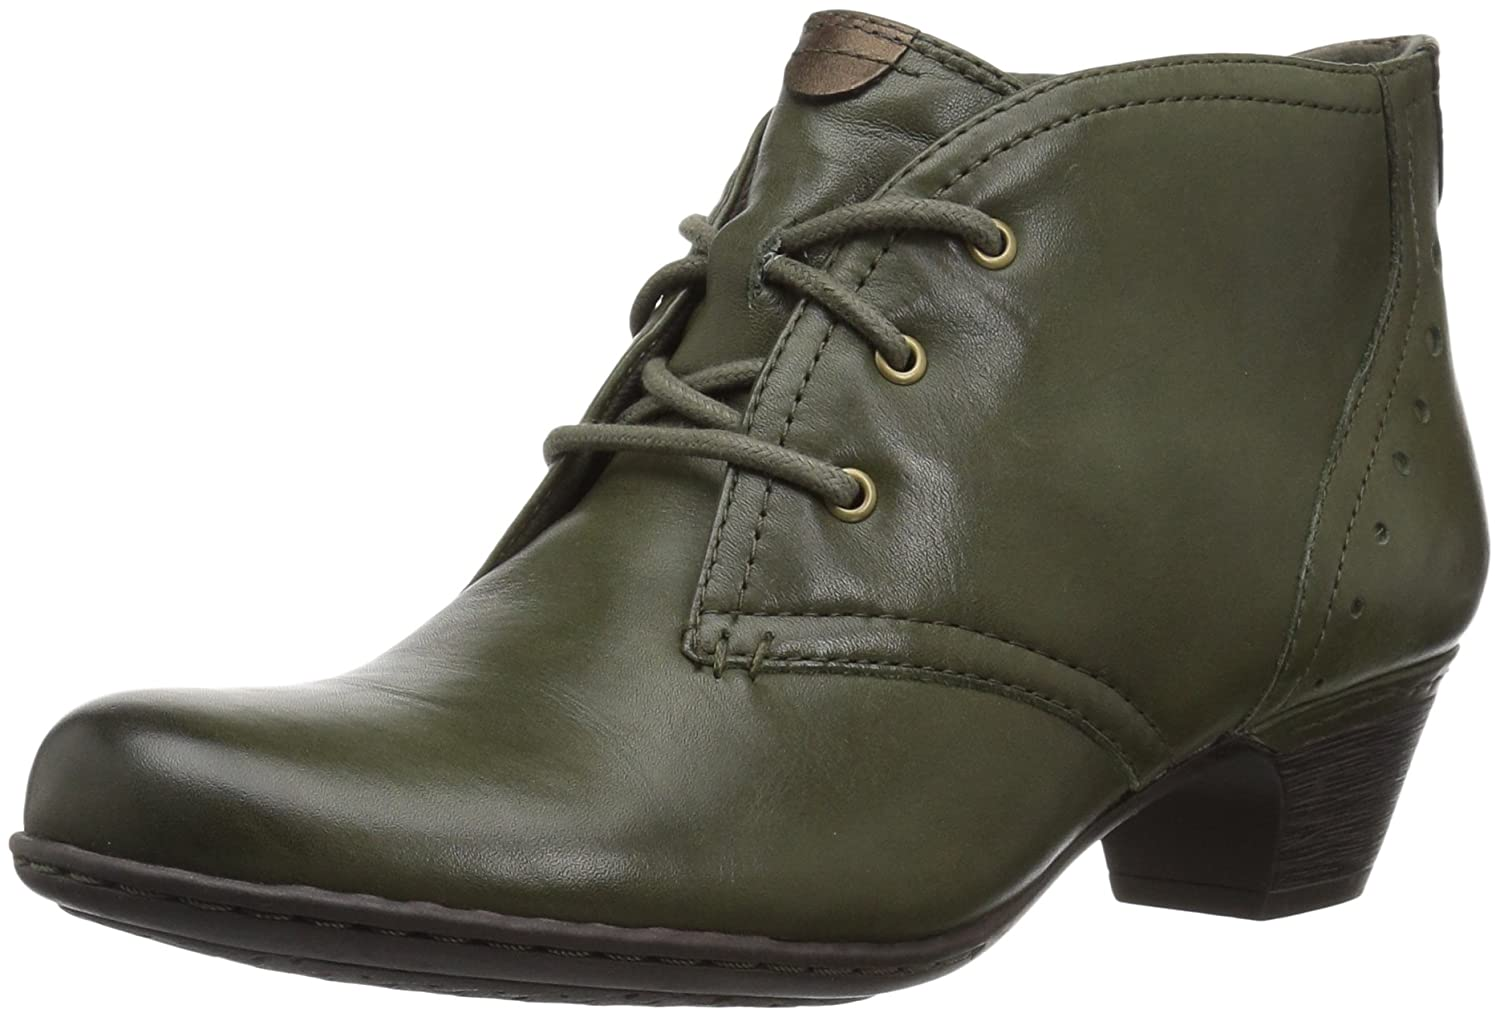 Evergreen Leather Cobb Hill by Rockport Womens Cobb Hill Aria Ankle Bootie